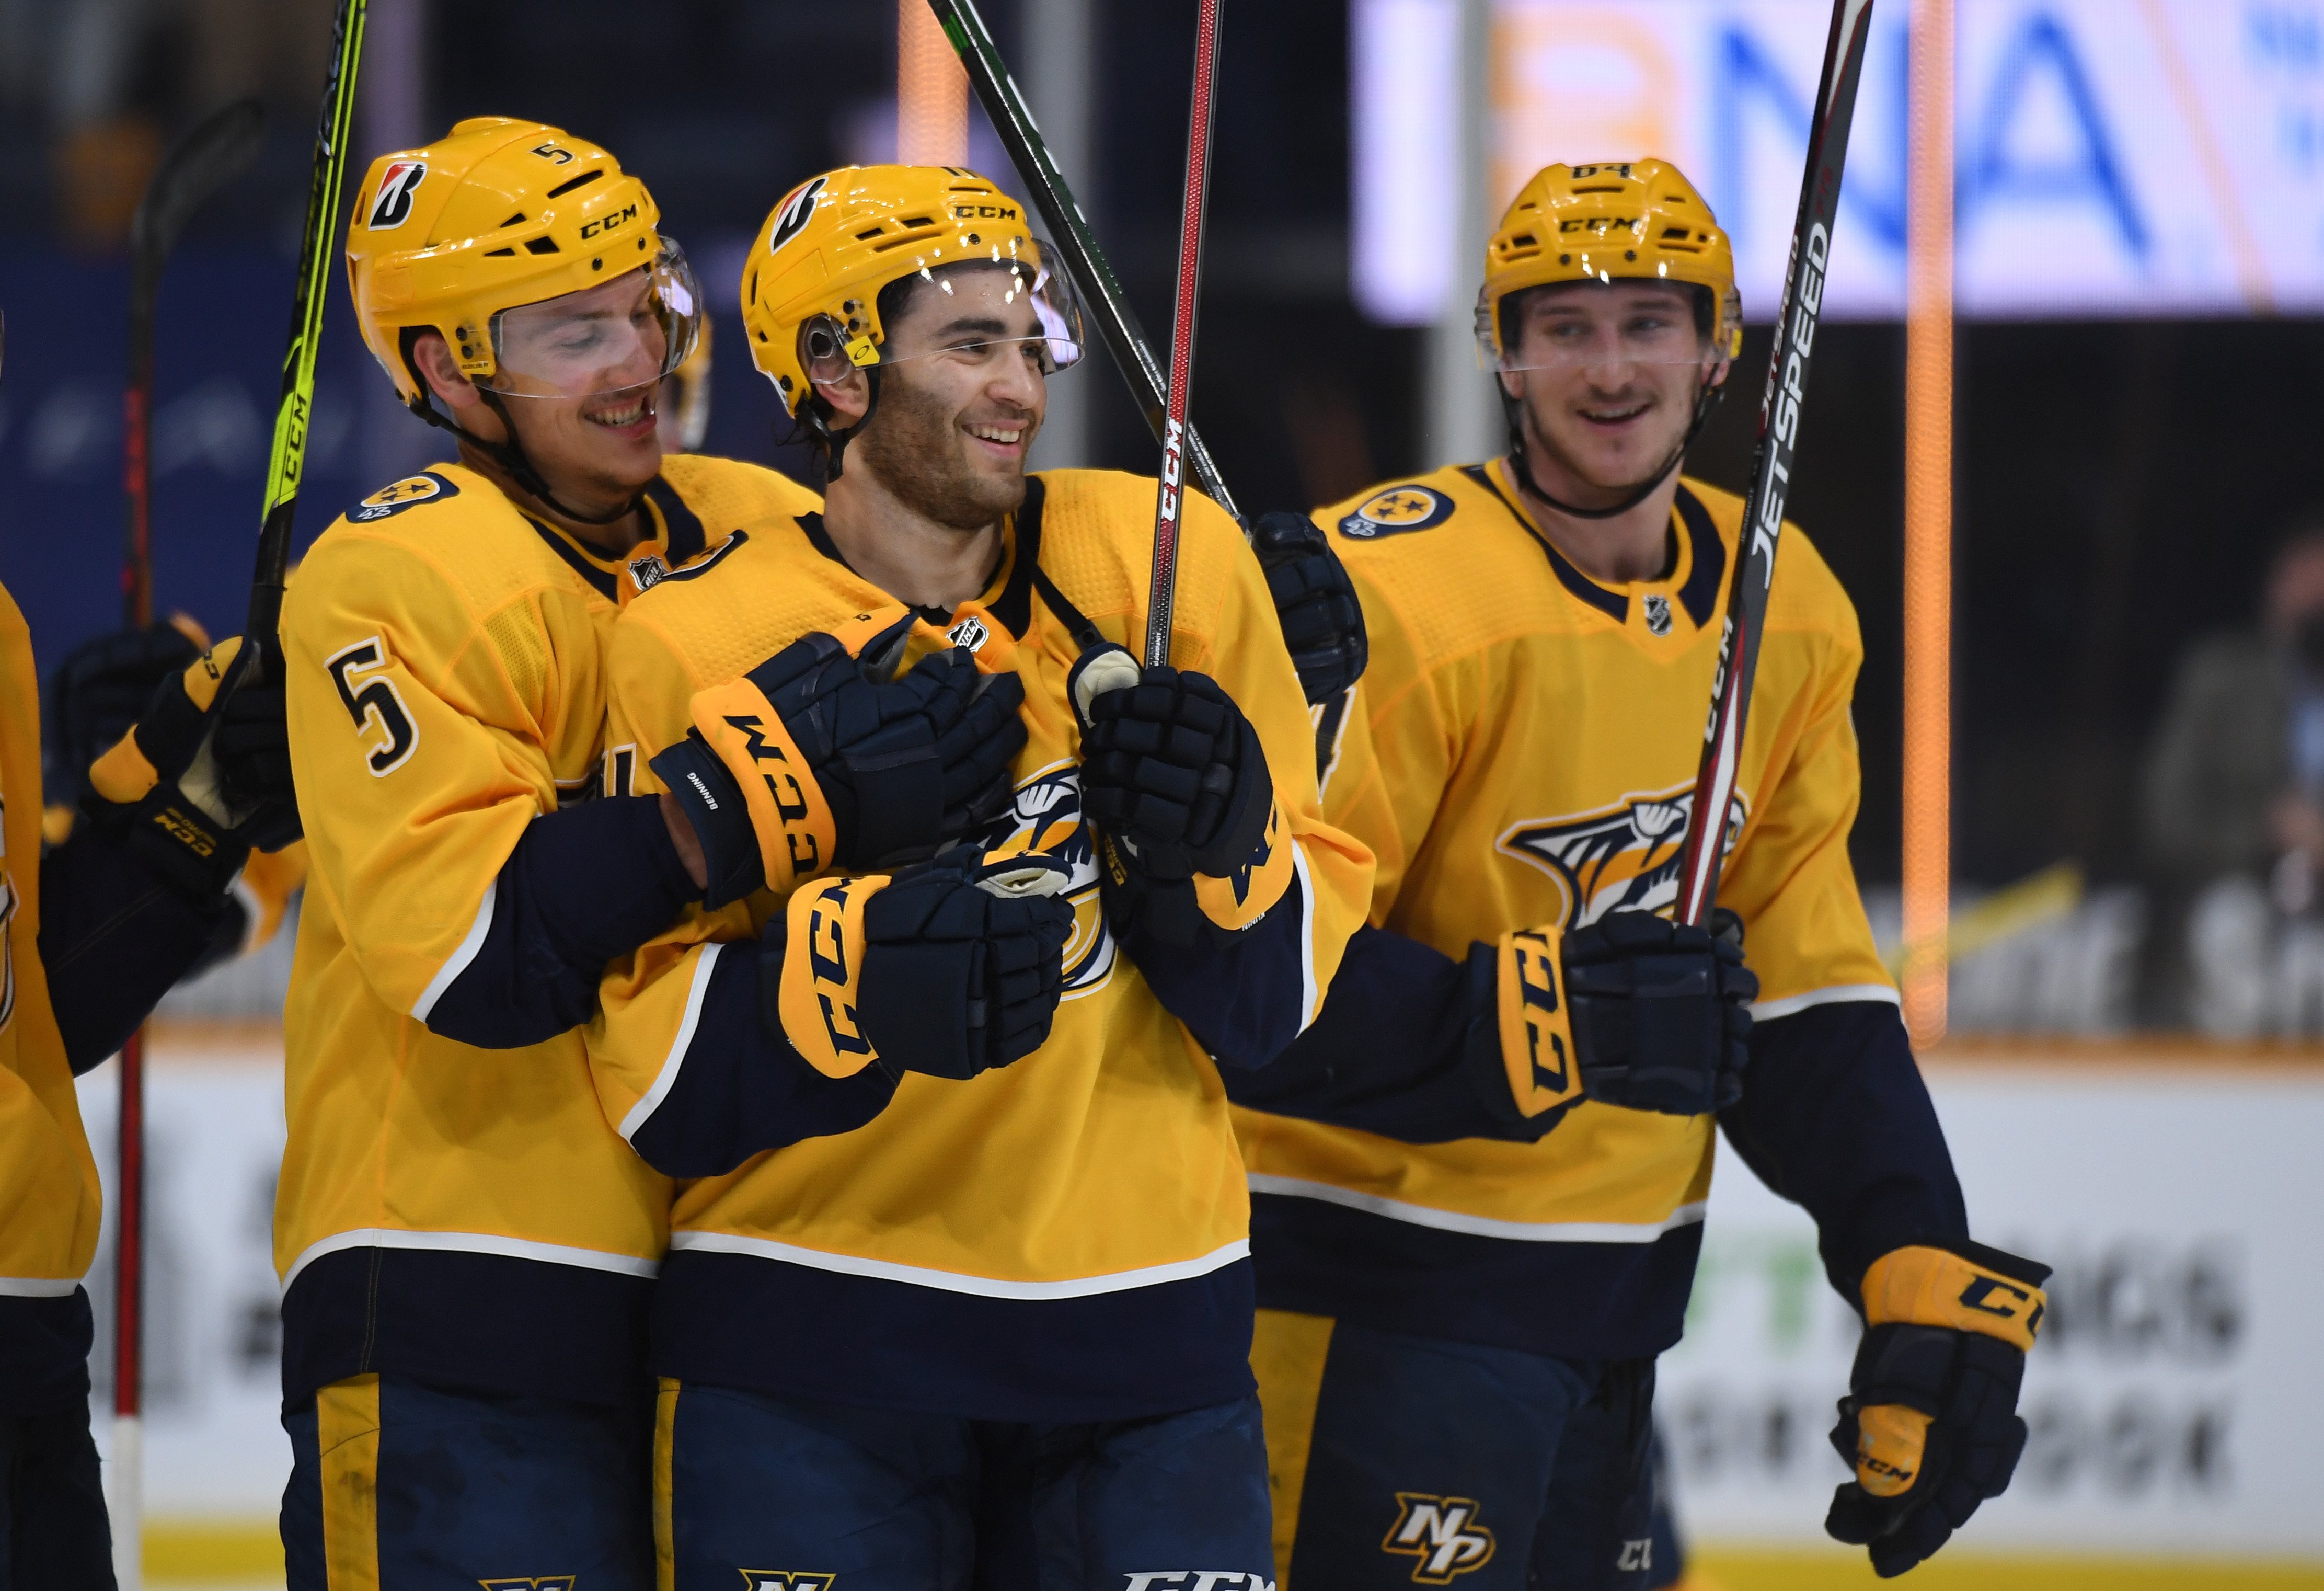 May 8, 2021; Nashville, Tennessee, USA; Nashville Predators center Luke Kunin (11) is congratulated by teammates after scoring two goals in the playoff-clinching win over the Carolina Hurricanes at Bridgestone Arena. Mandatory Credit: Christopher Hanewinckel-USA TODAY Sports